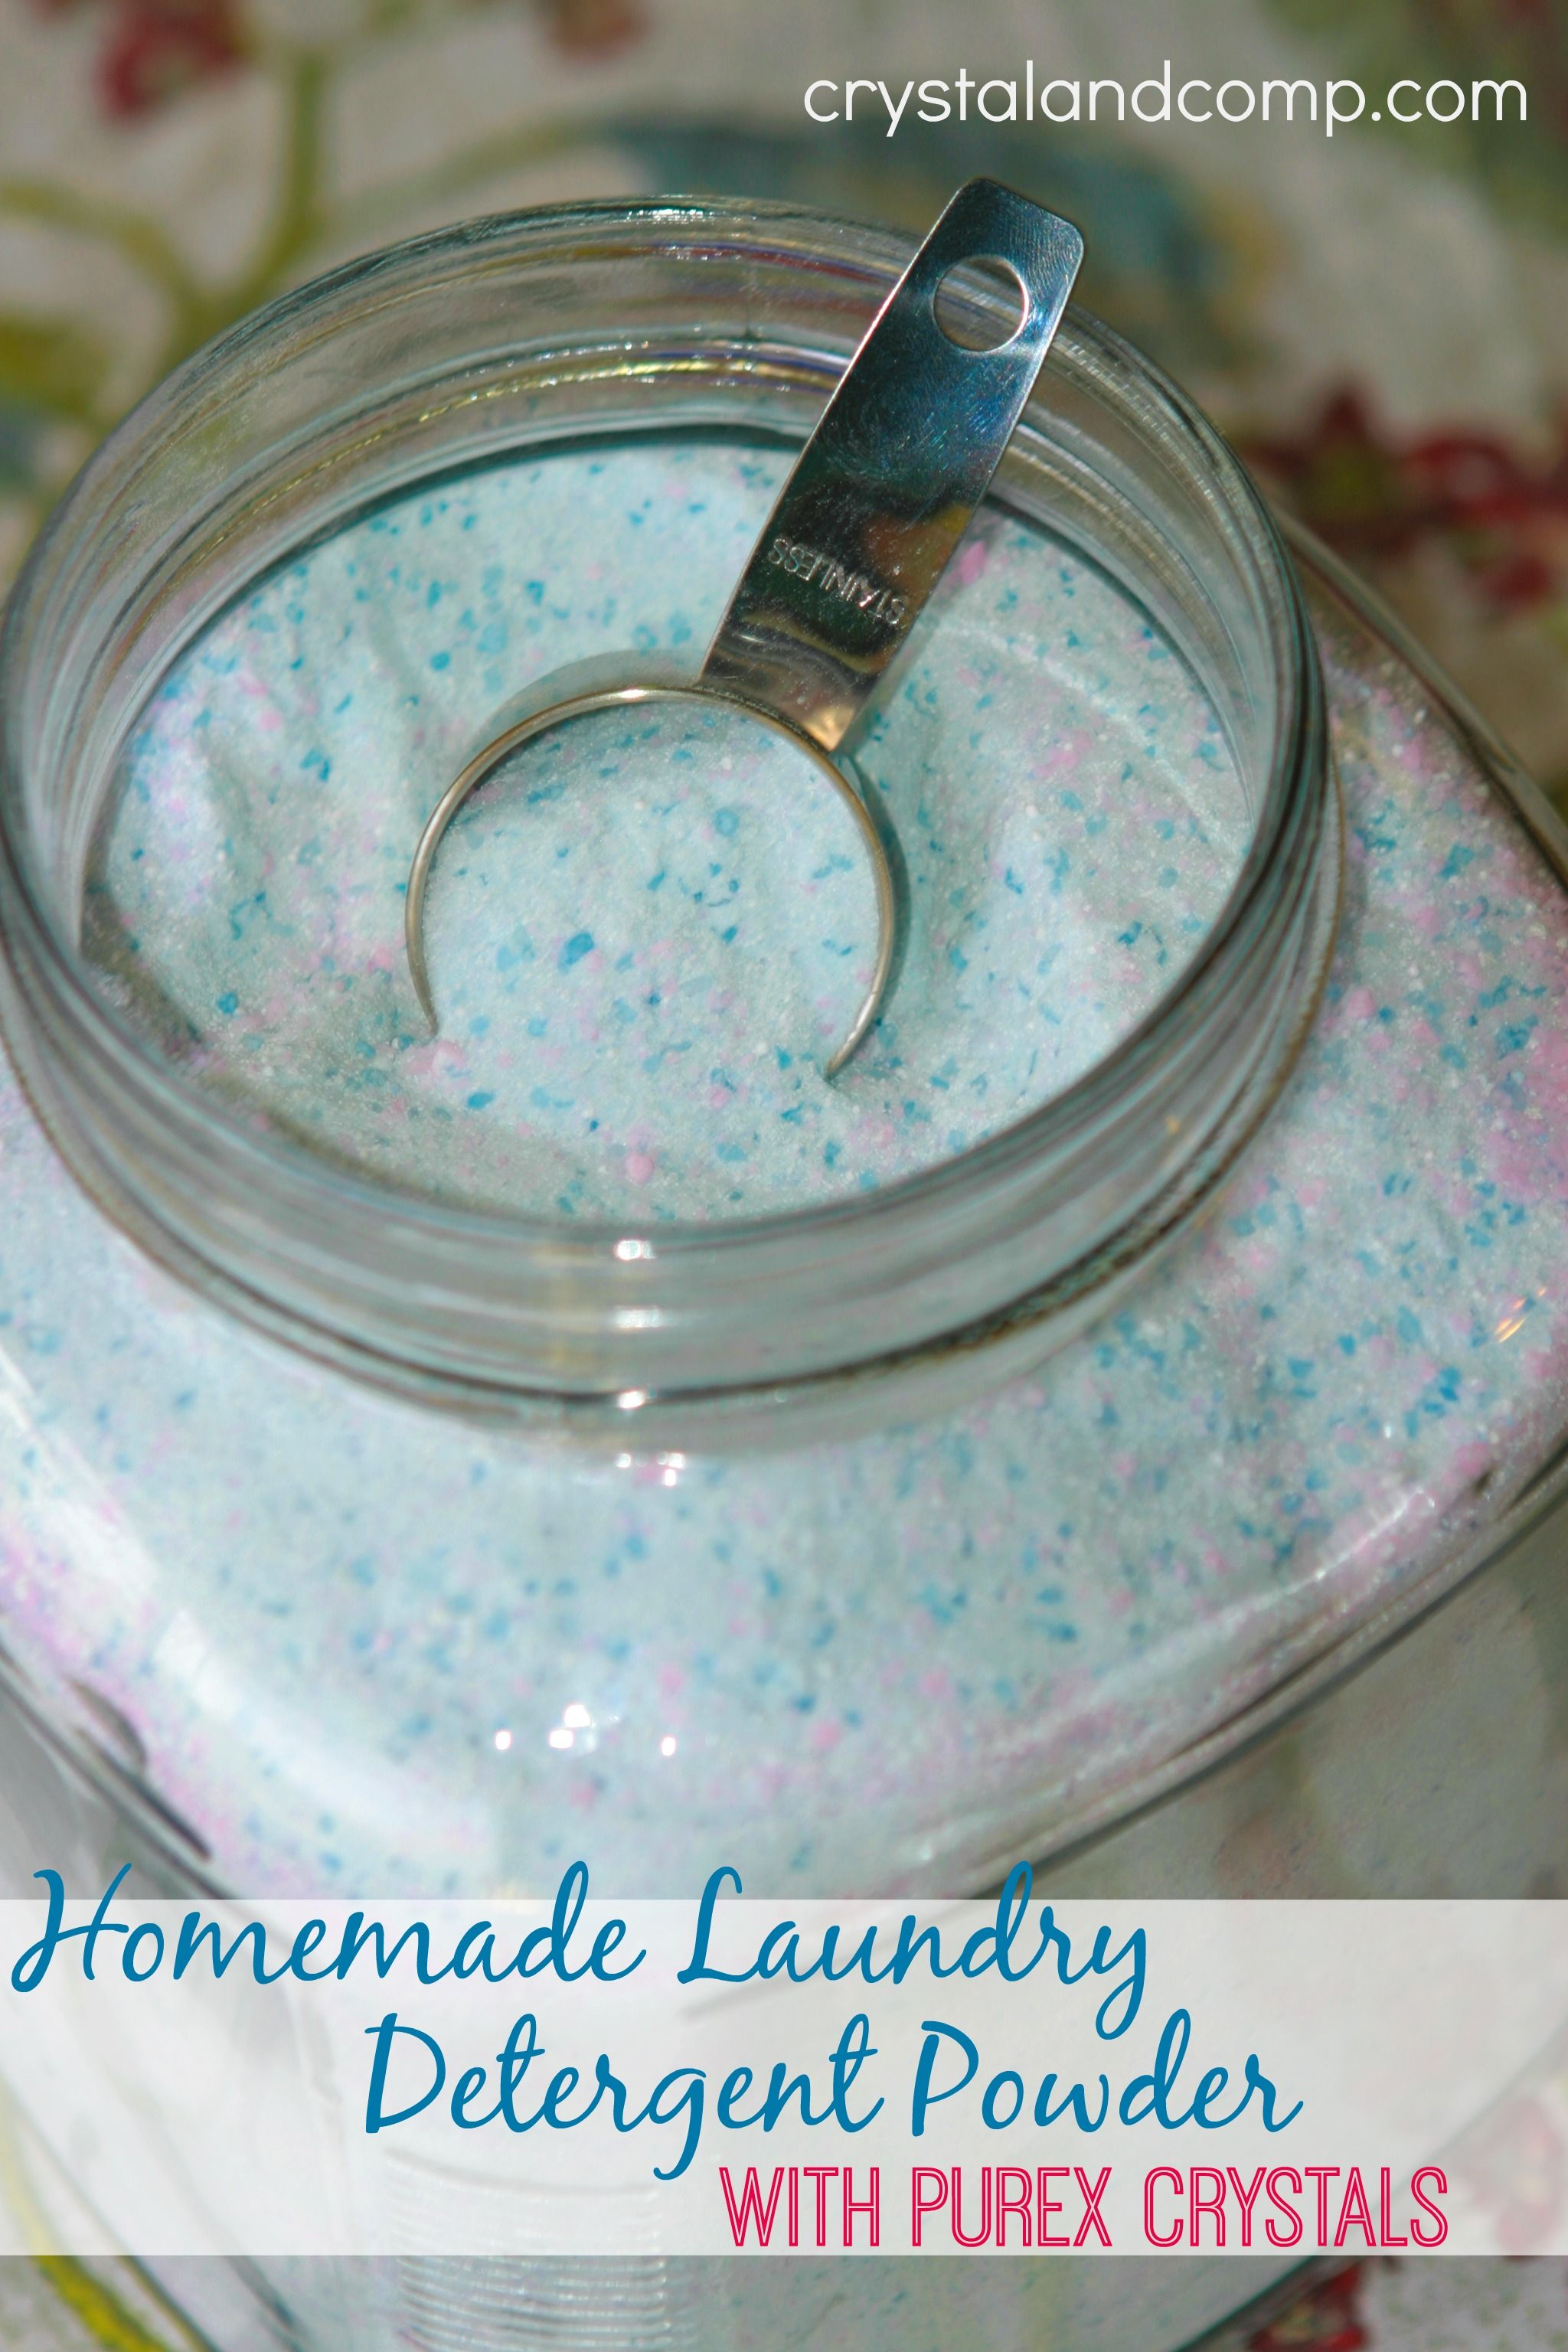 Homemade Laundry Detergent Powder With Purex Crystals Homemade